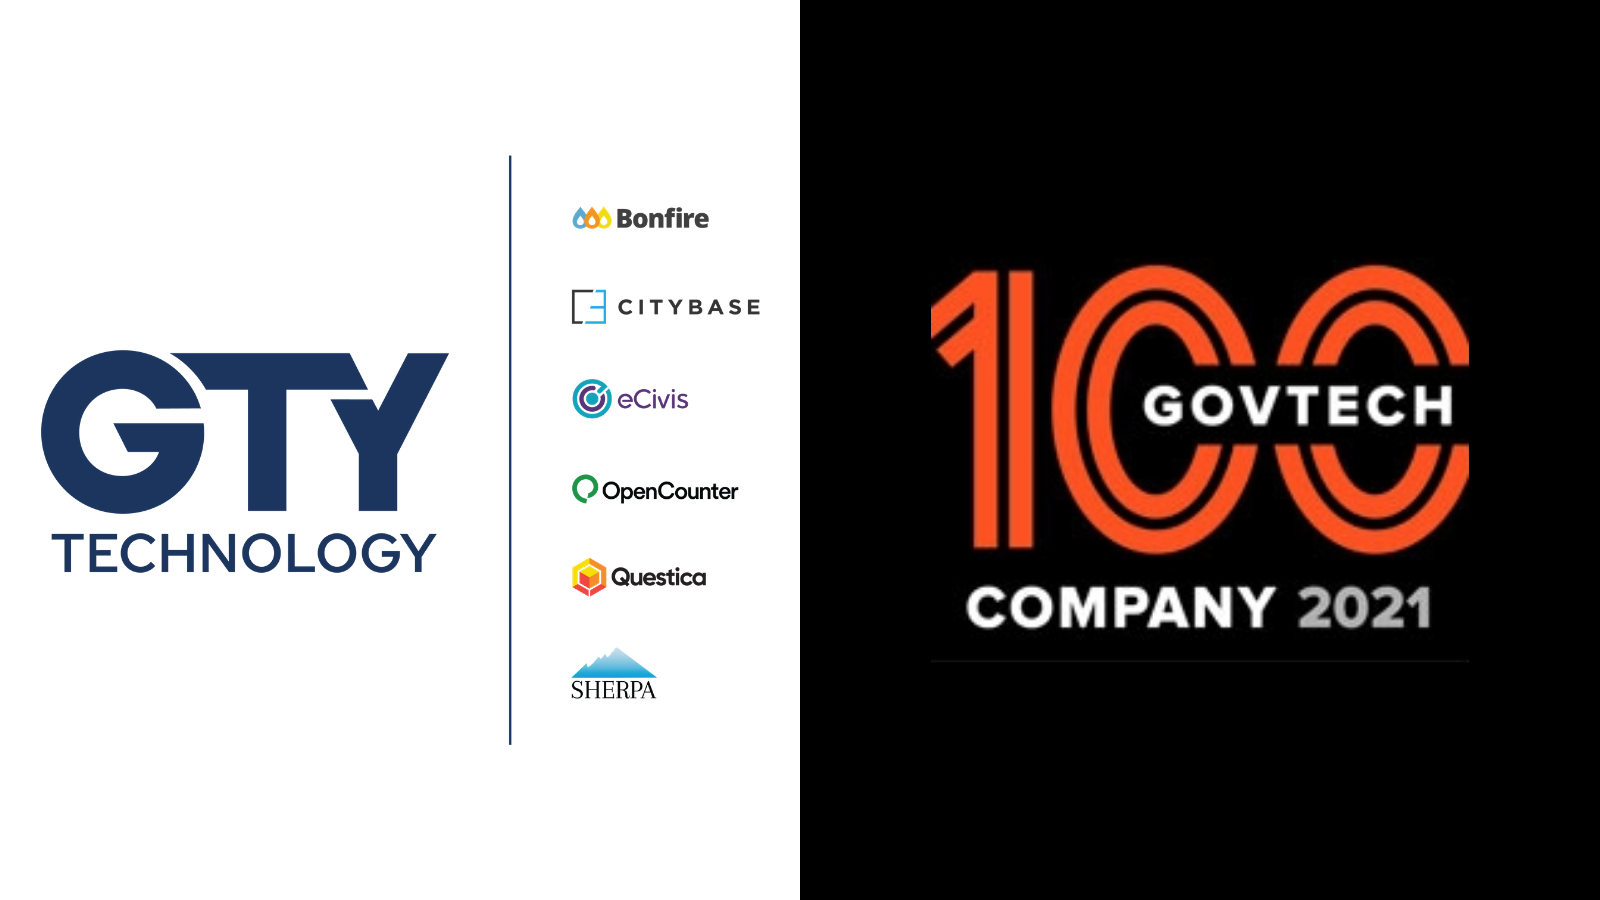 GTY Technology recognized as GovTech 100 Company for 2021